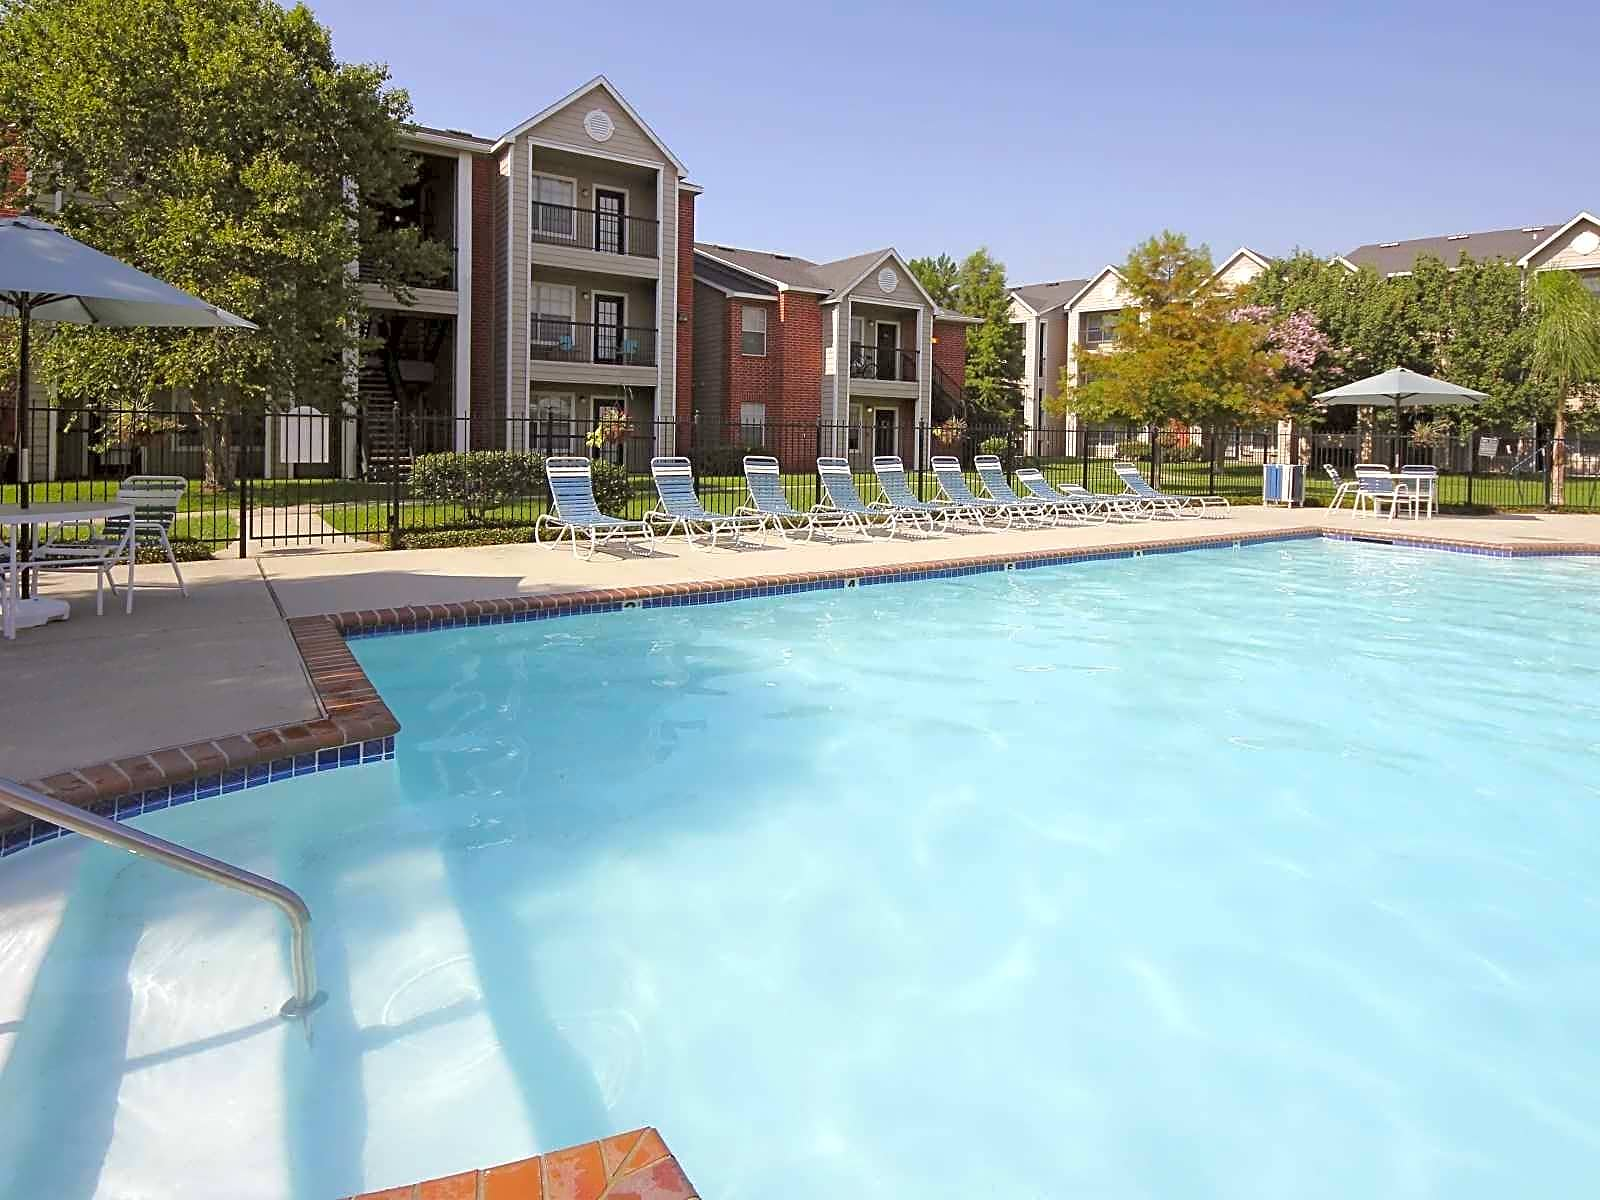 Privateer place student village apartments new orleans River garden apartments new orleans